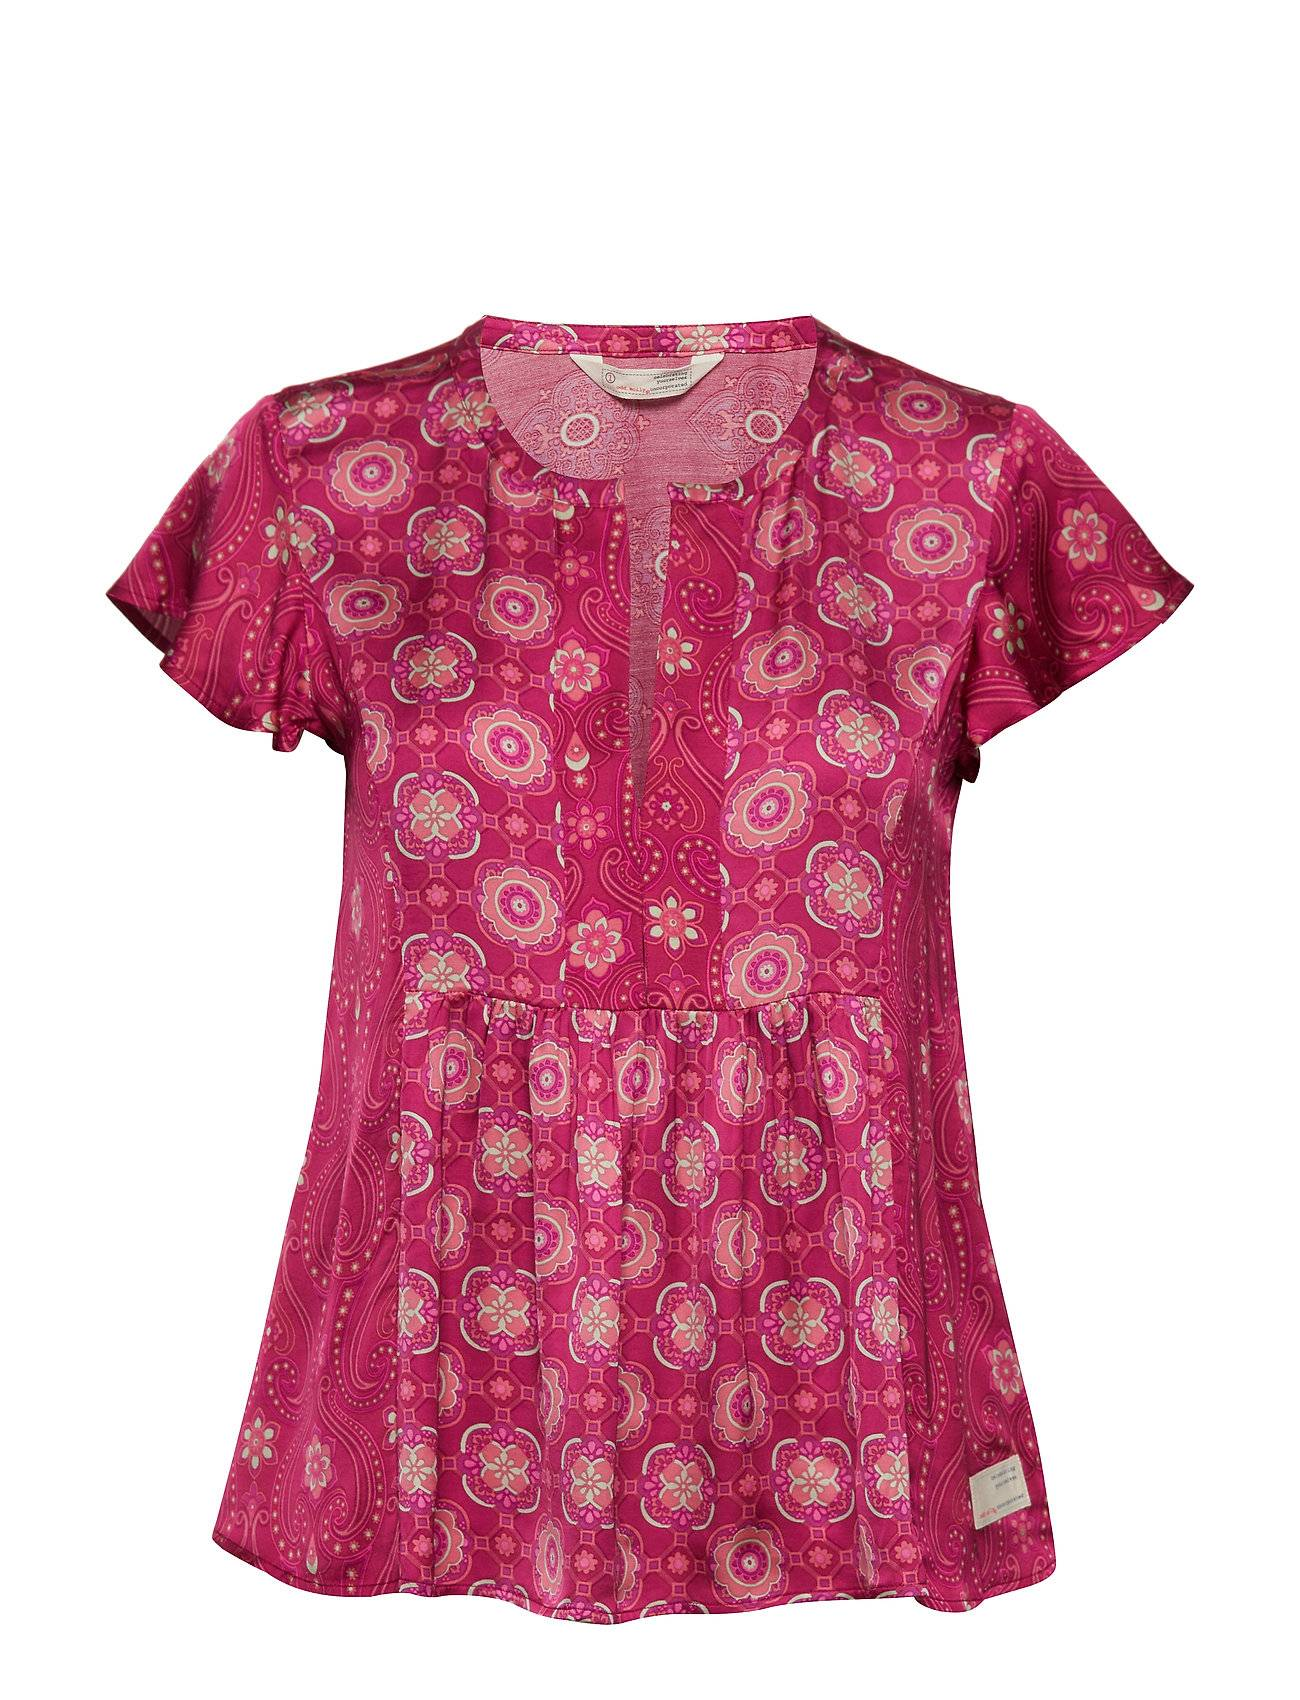 Image of ODD MOLLY Funky Belle Blouse Blouses Short-sleeved Vaaleanpunainen ODD MOLLY